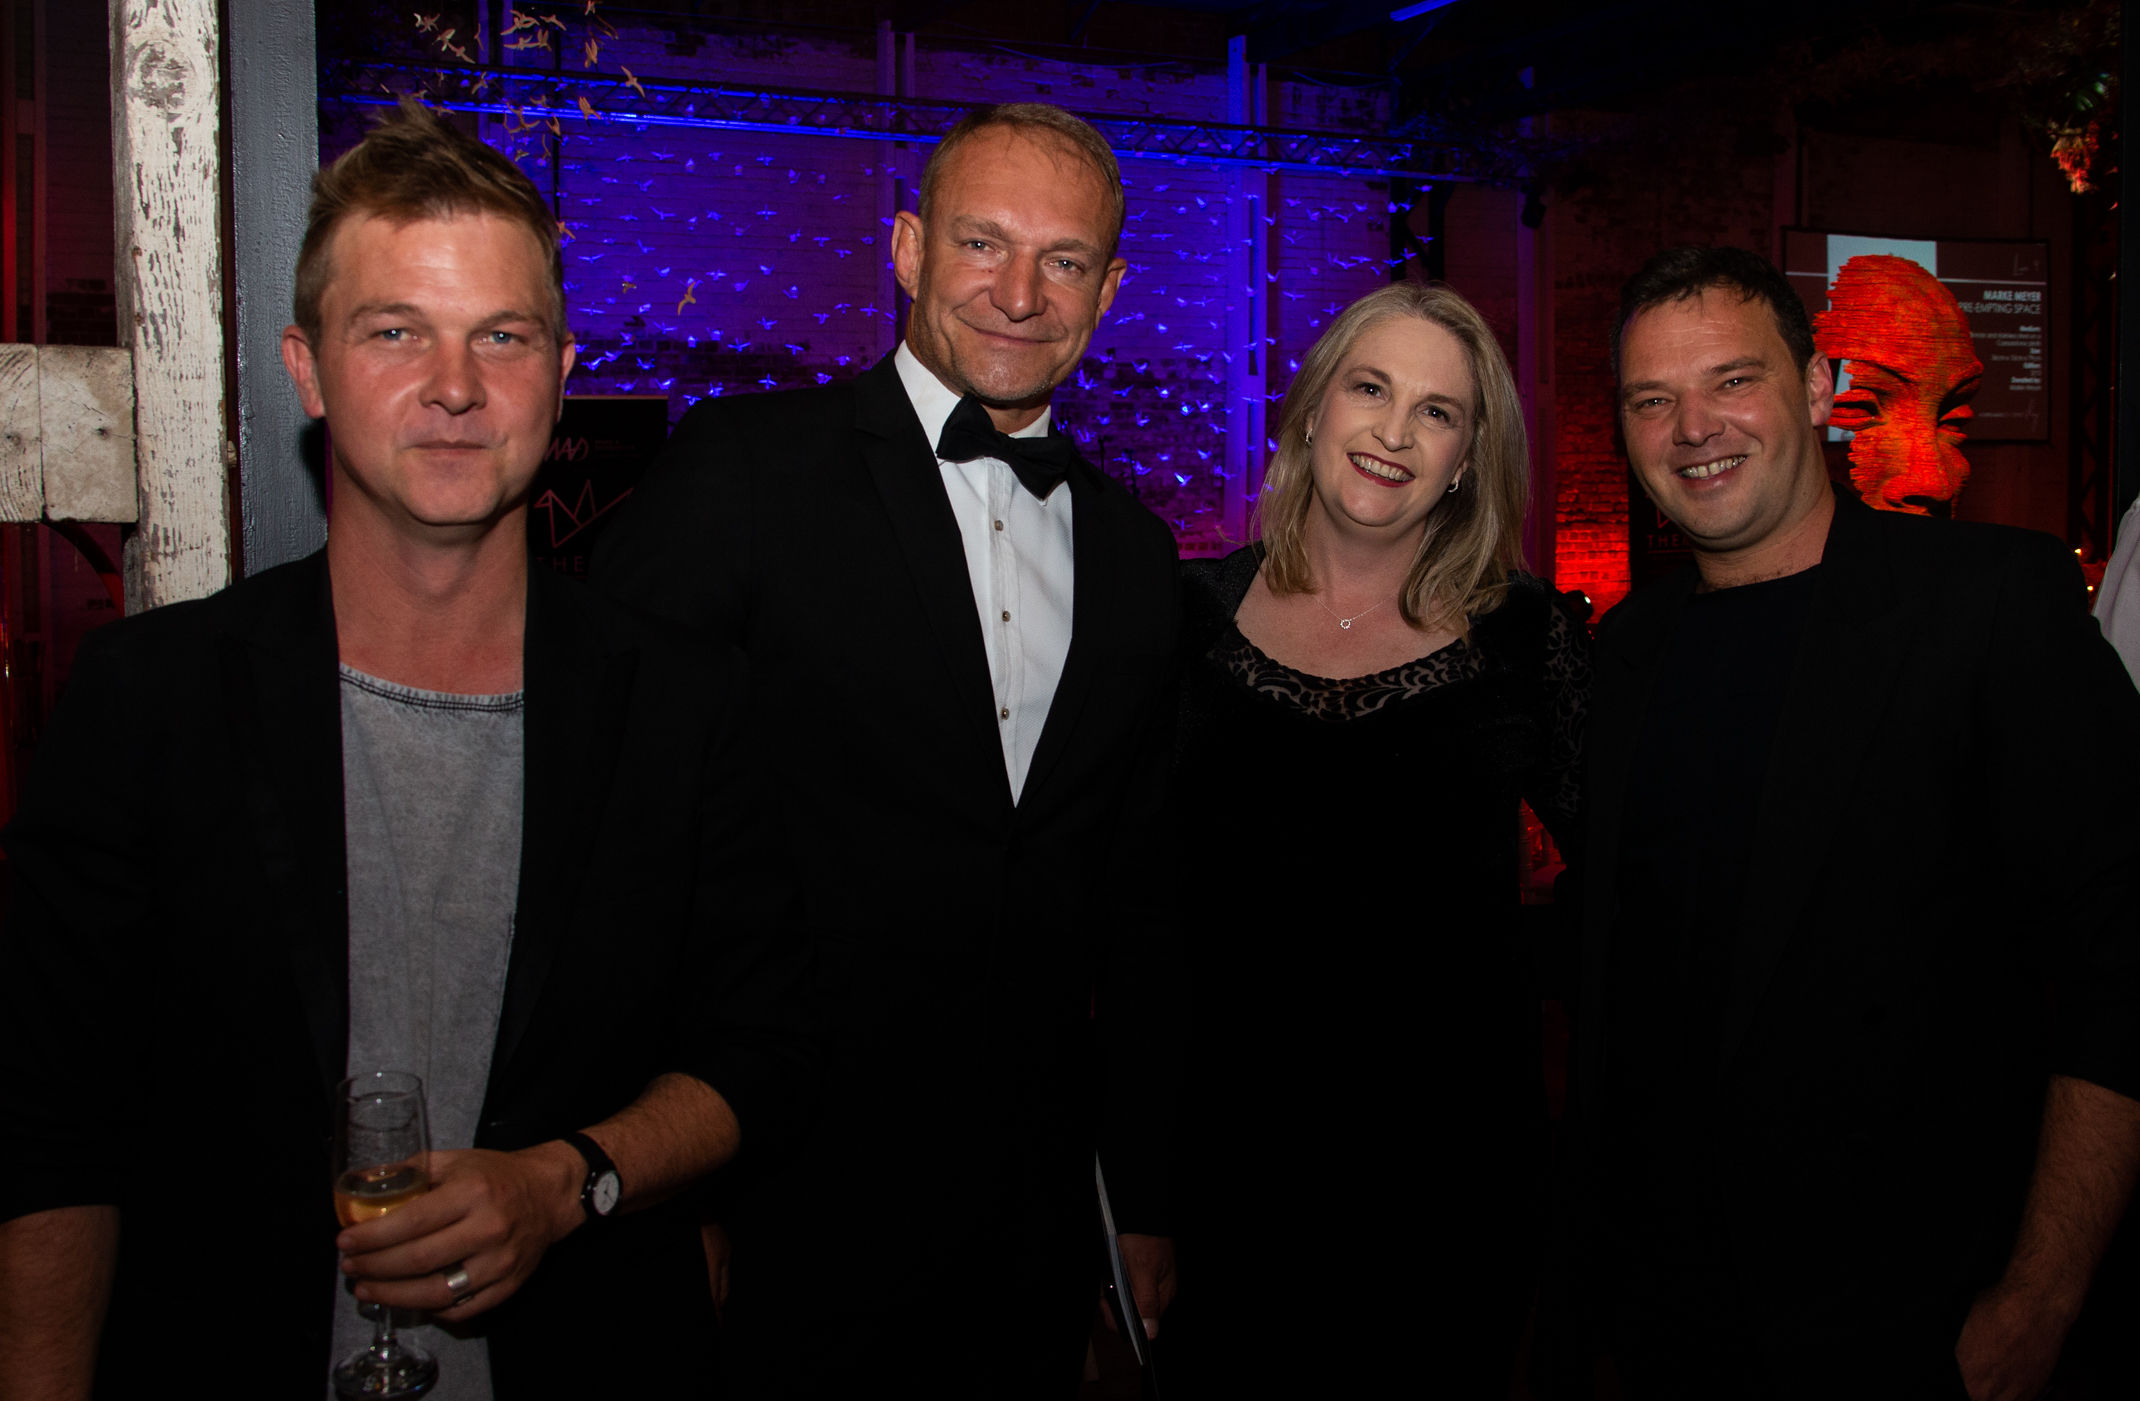 Pictured from left to right, Daniel Swanepoel (Rialheim CEO), Francois Pienaar (MAD Leadership Foundation Founder and Chairman), Helette Pieterse (MAD Leadership Foundation CEO), Rial Visagie (Rialheim Creative Director).